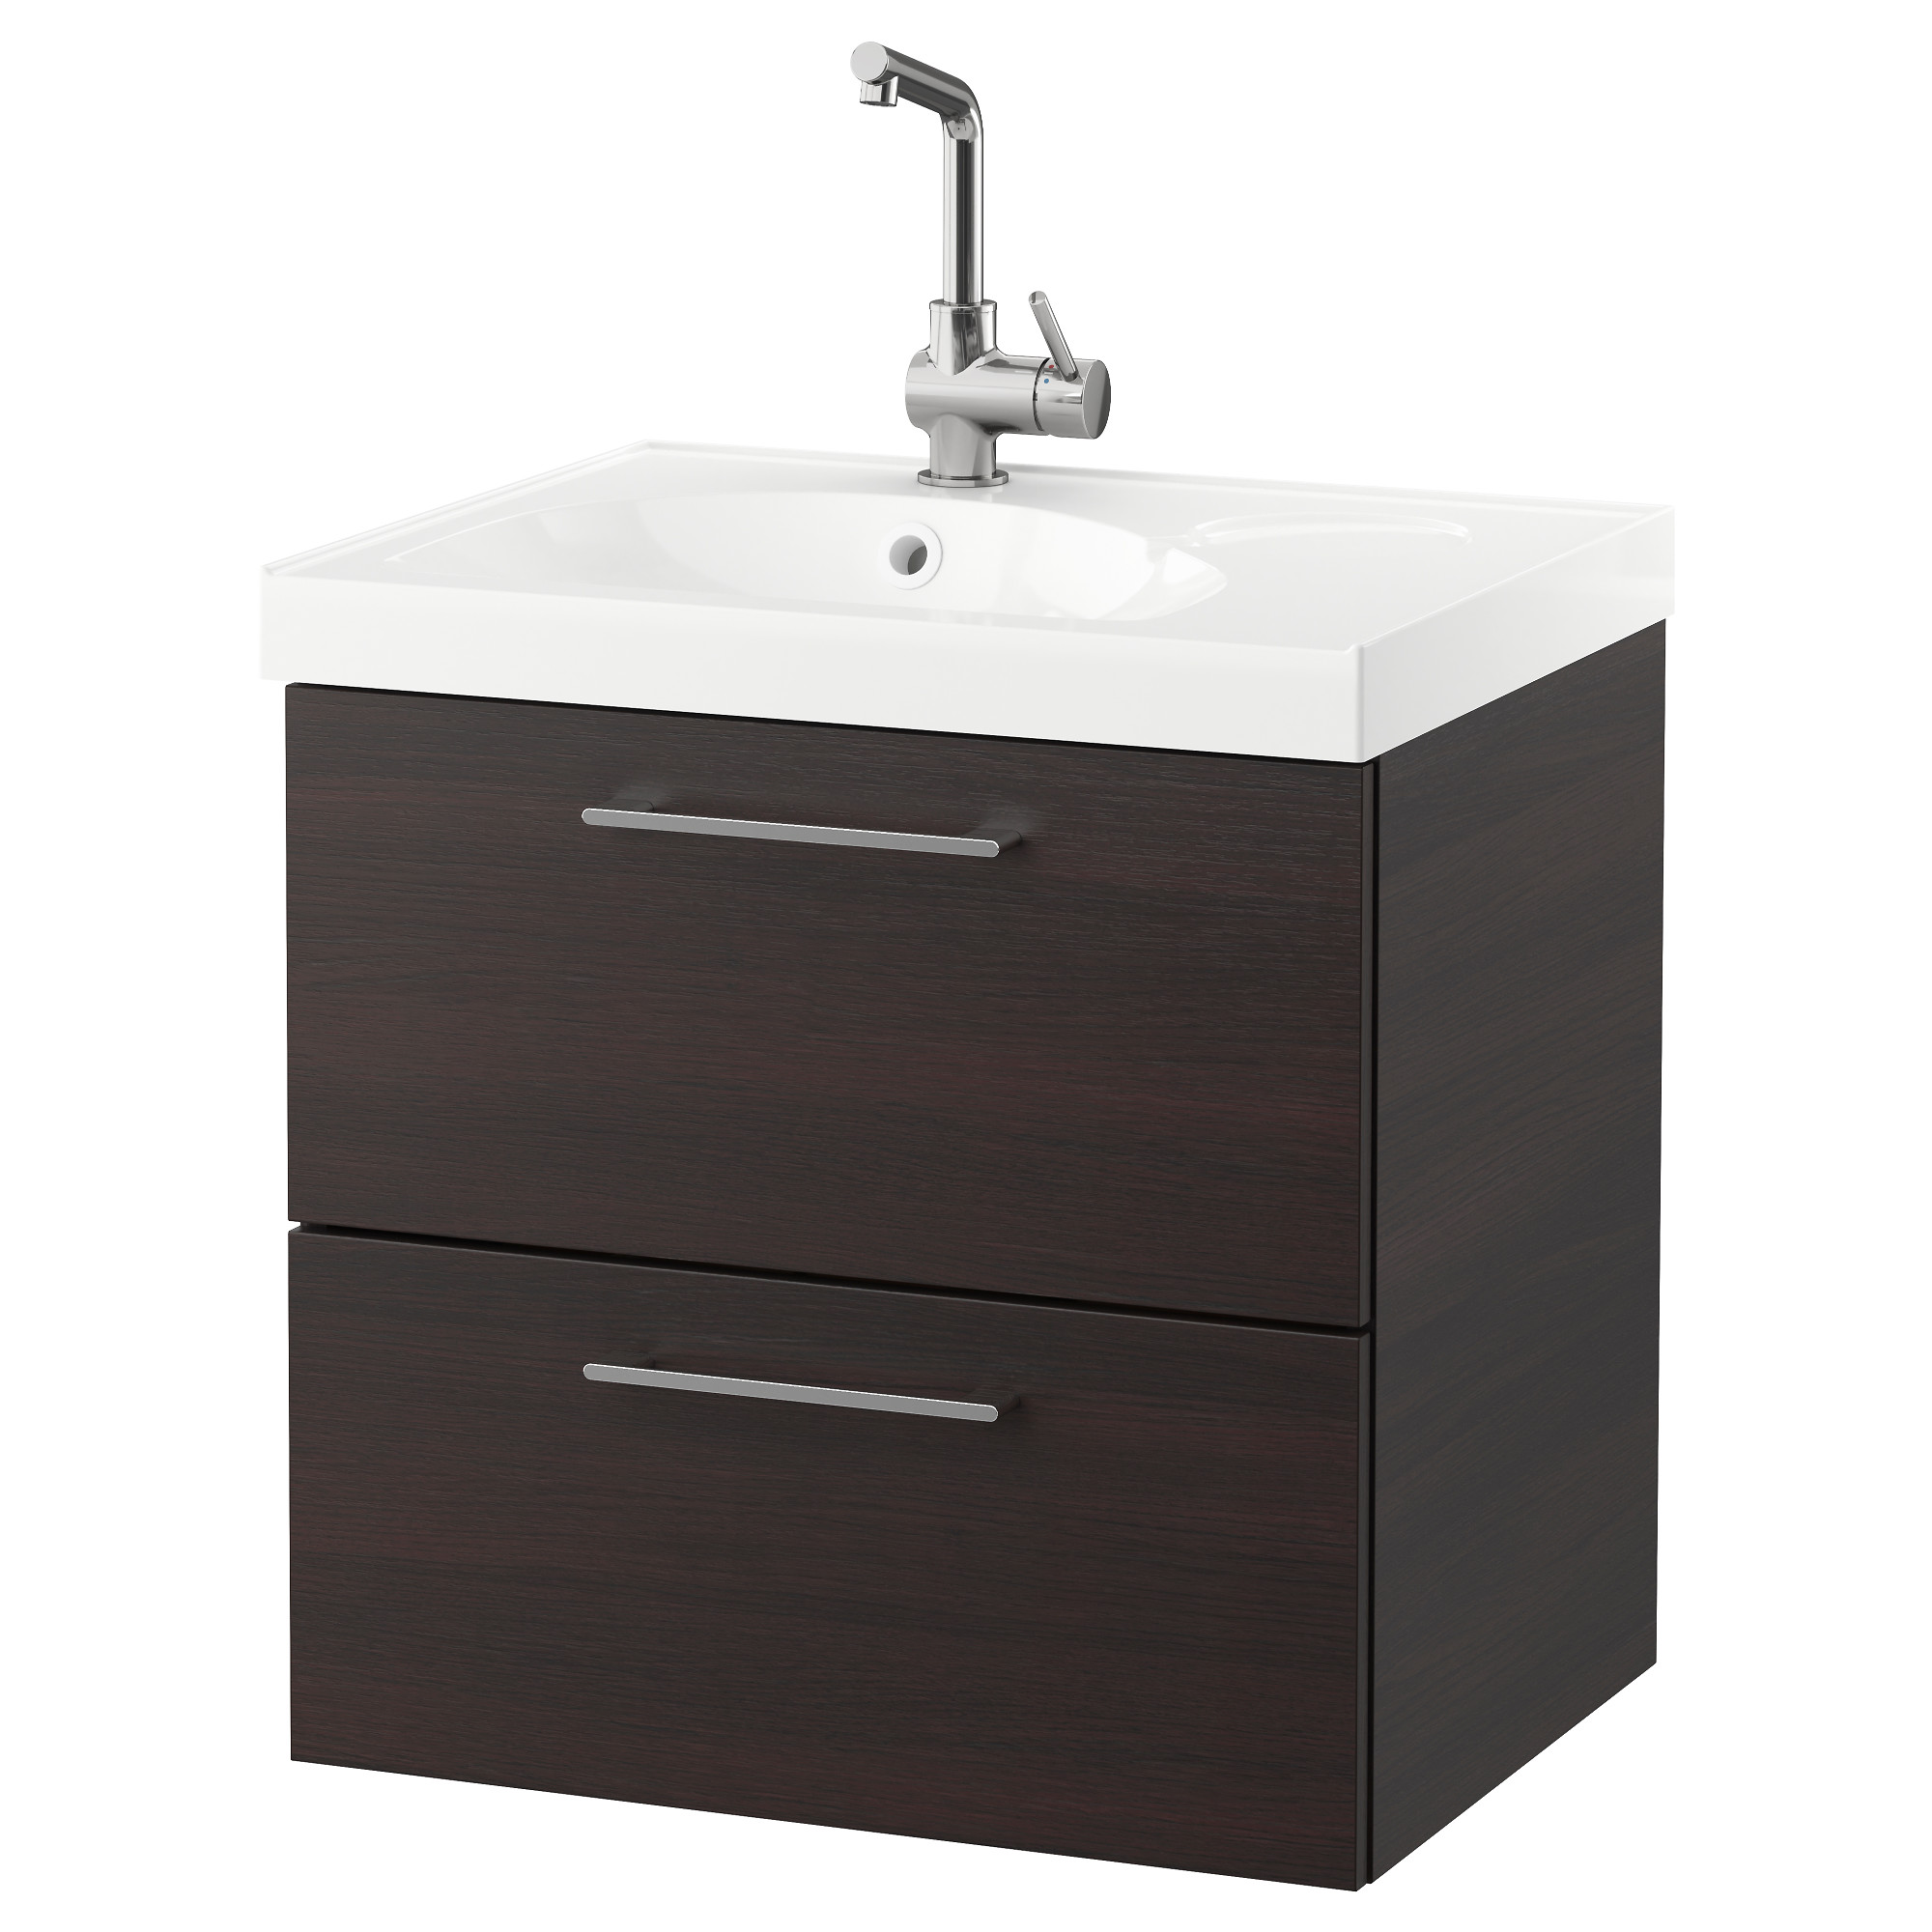 Godmorgon Edeboviken Sink Cabinet With 2 Drawers Black Brown Width 24 3